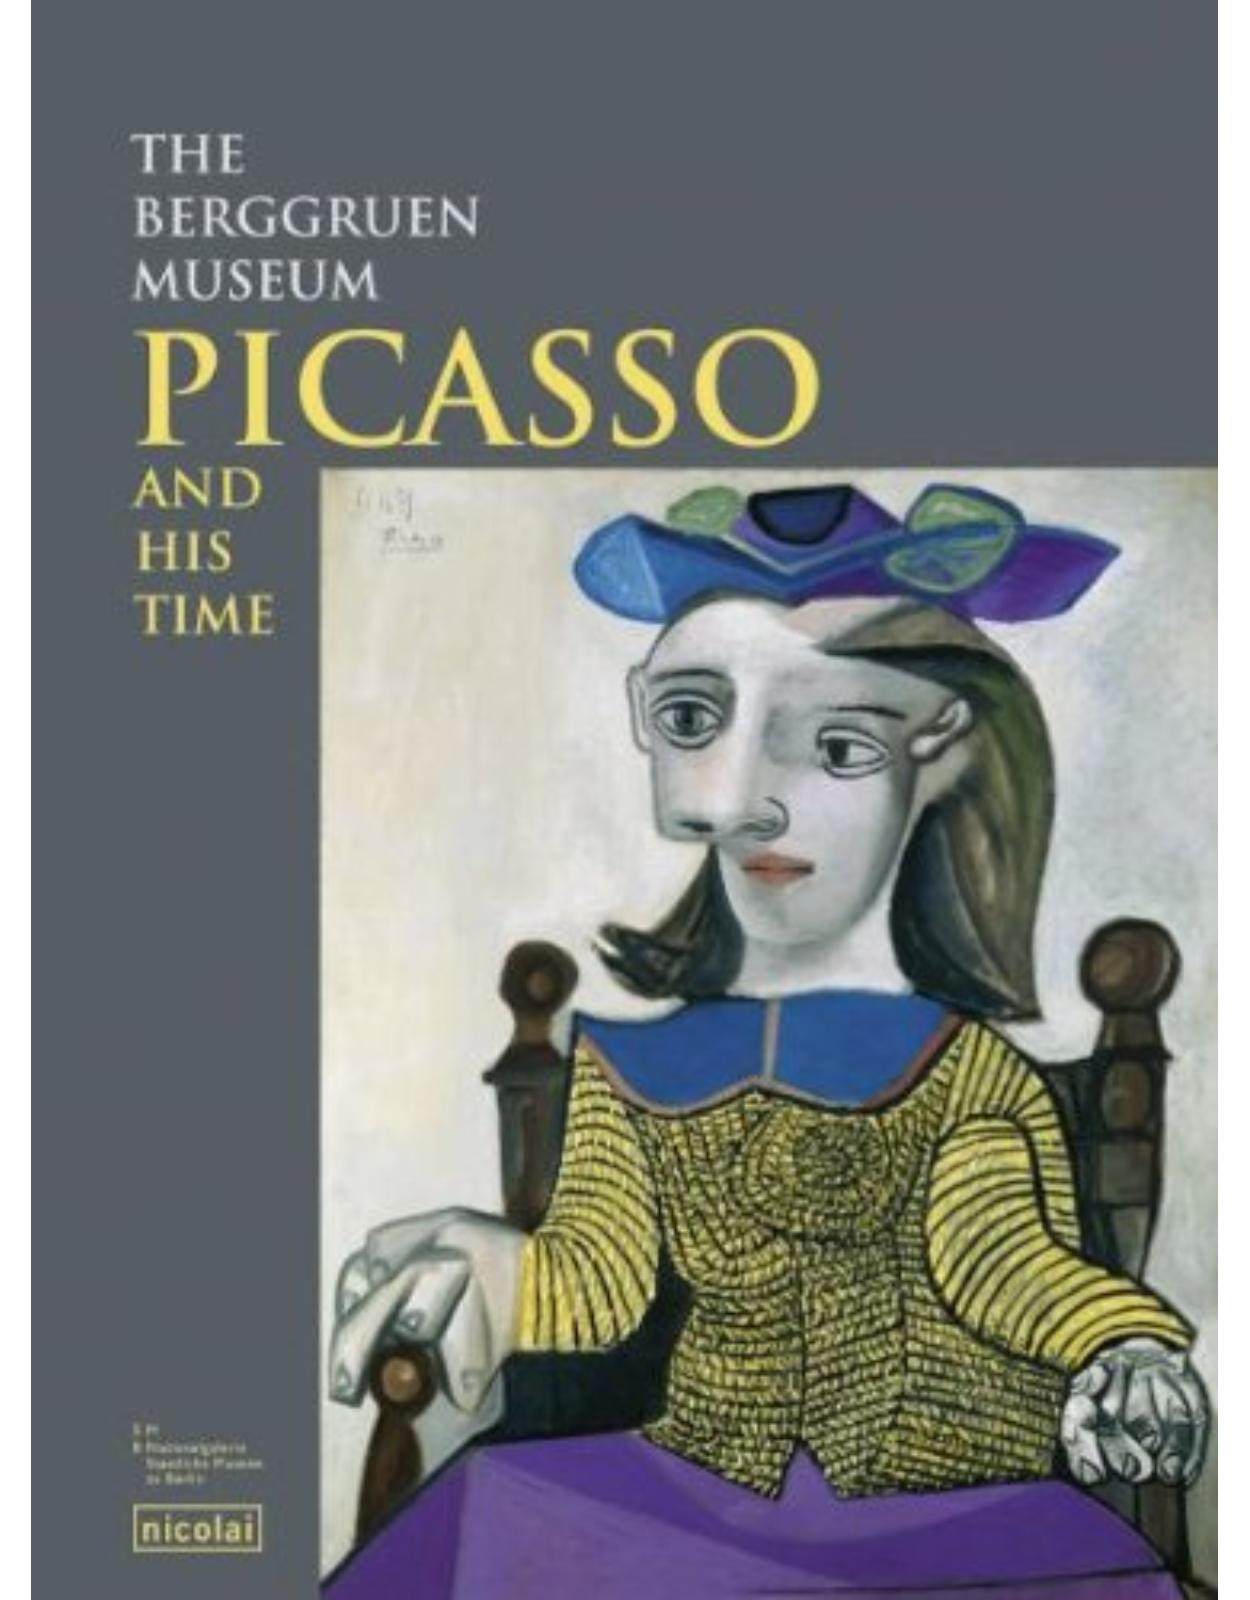 Picasso and his time: The Berggruen Collection